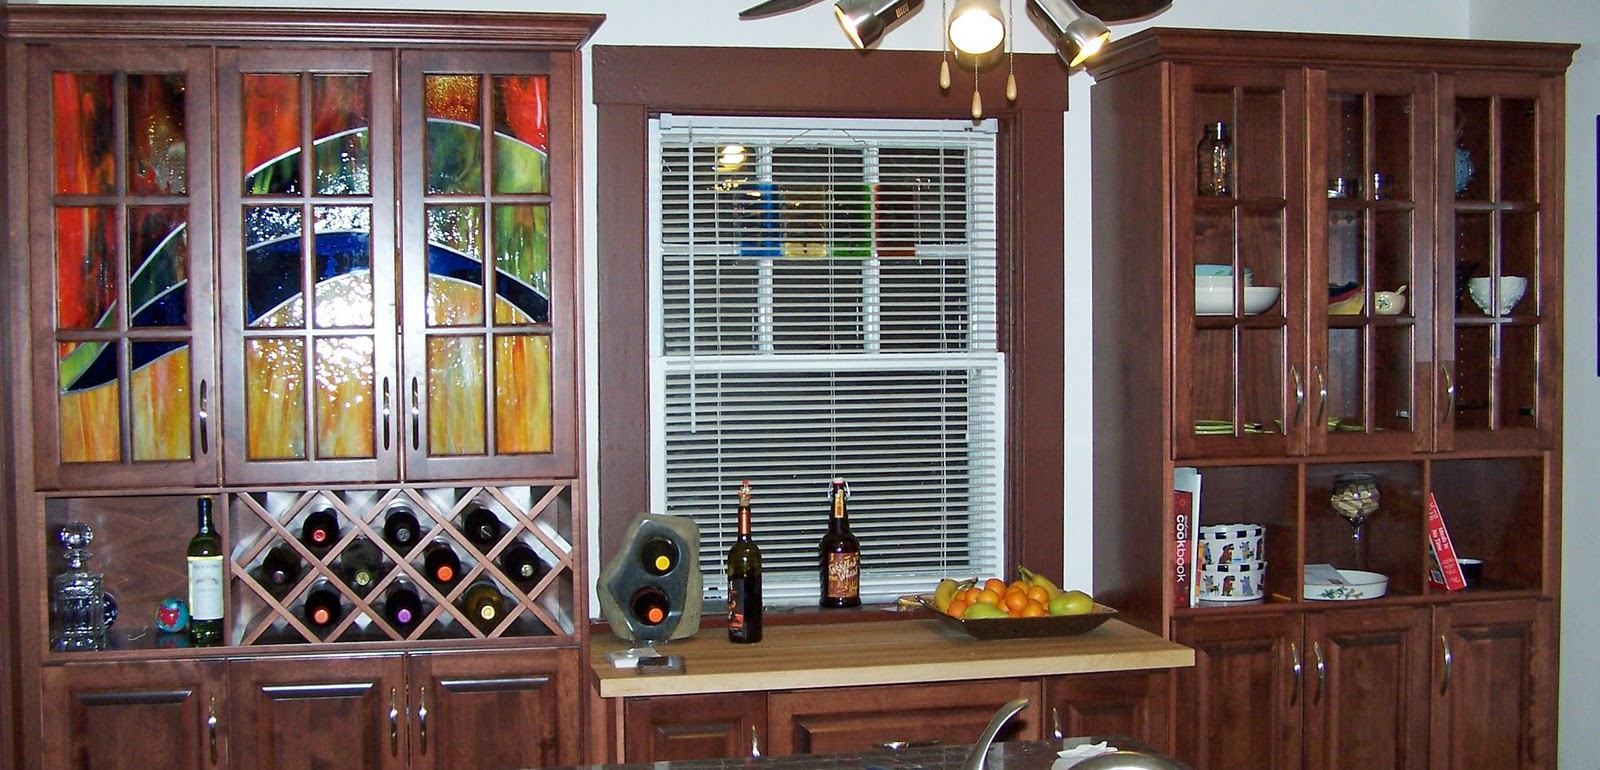 Decorative Kitchen Cabinets with Glass Doors